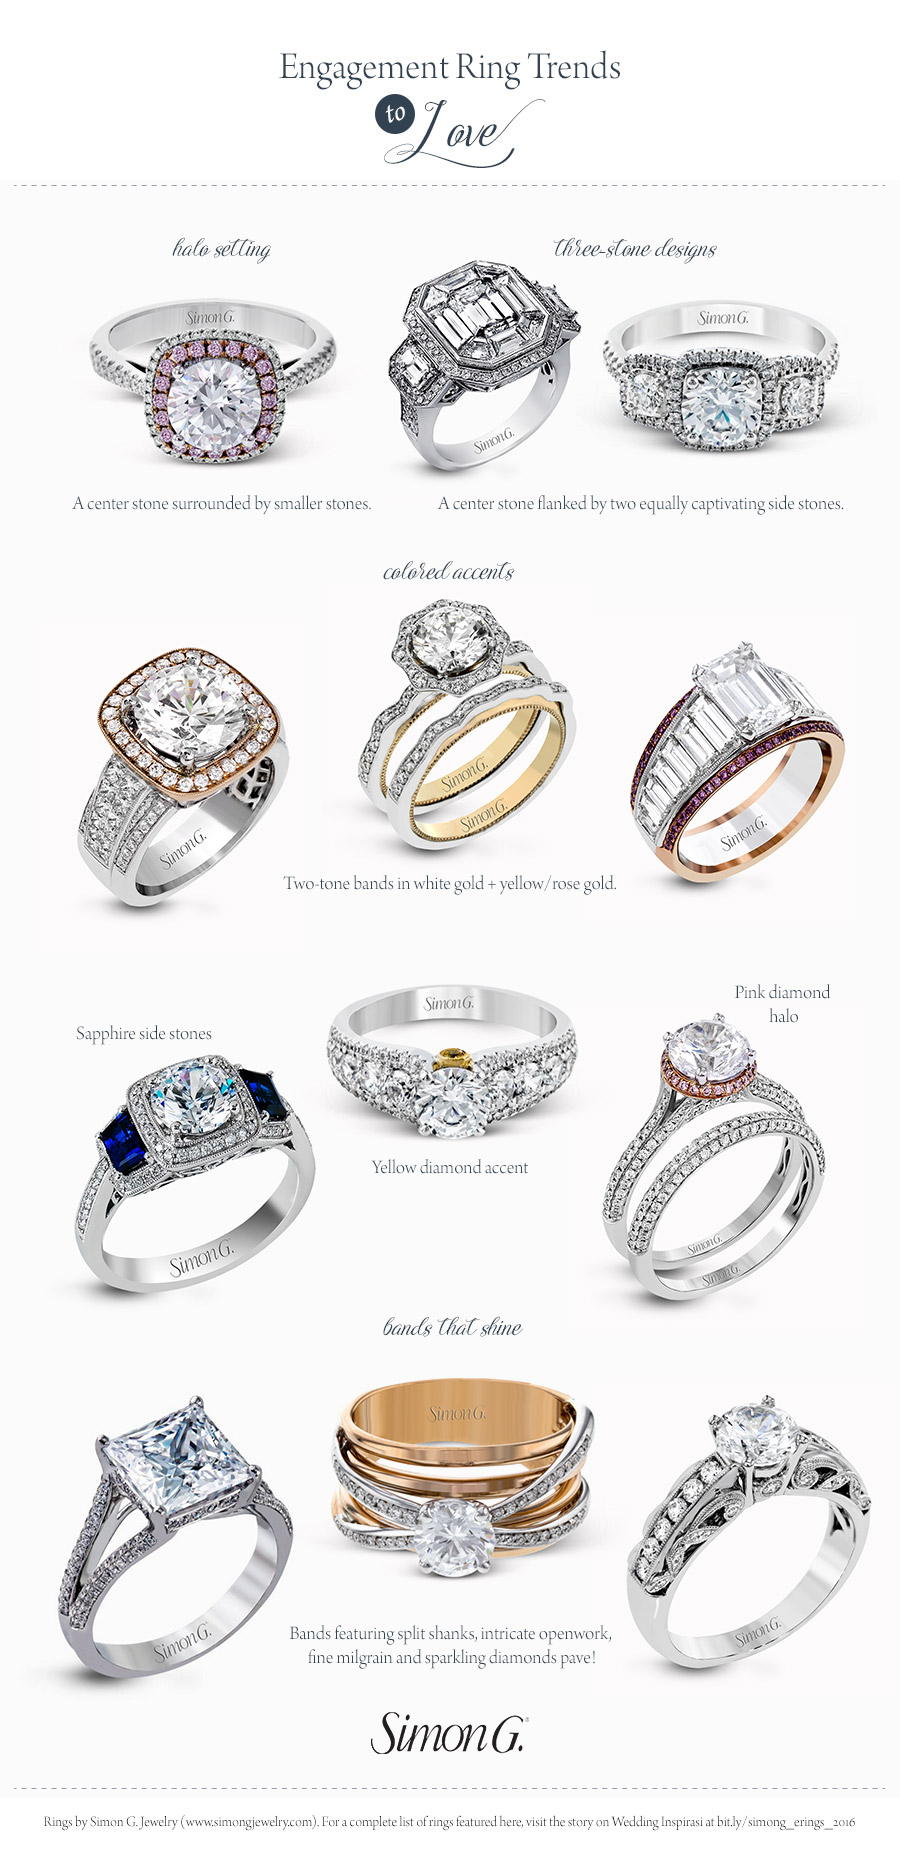 Simon G Gorgeous Engagement Rings Wedding Ring Styles And Trends 2017 Colored Diamond Rose Gold Three